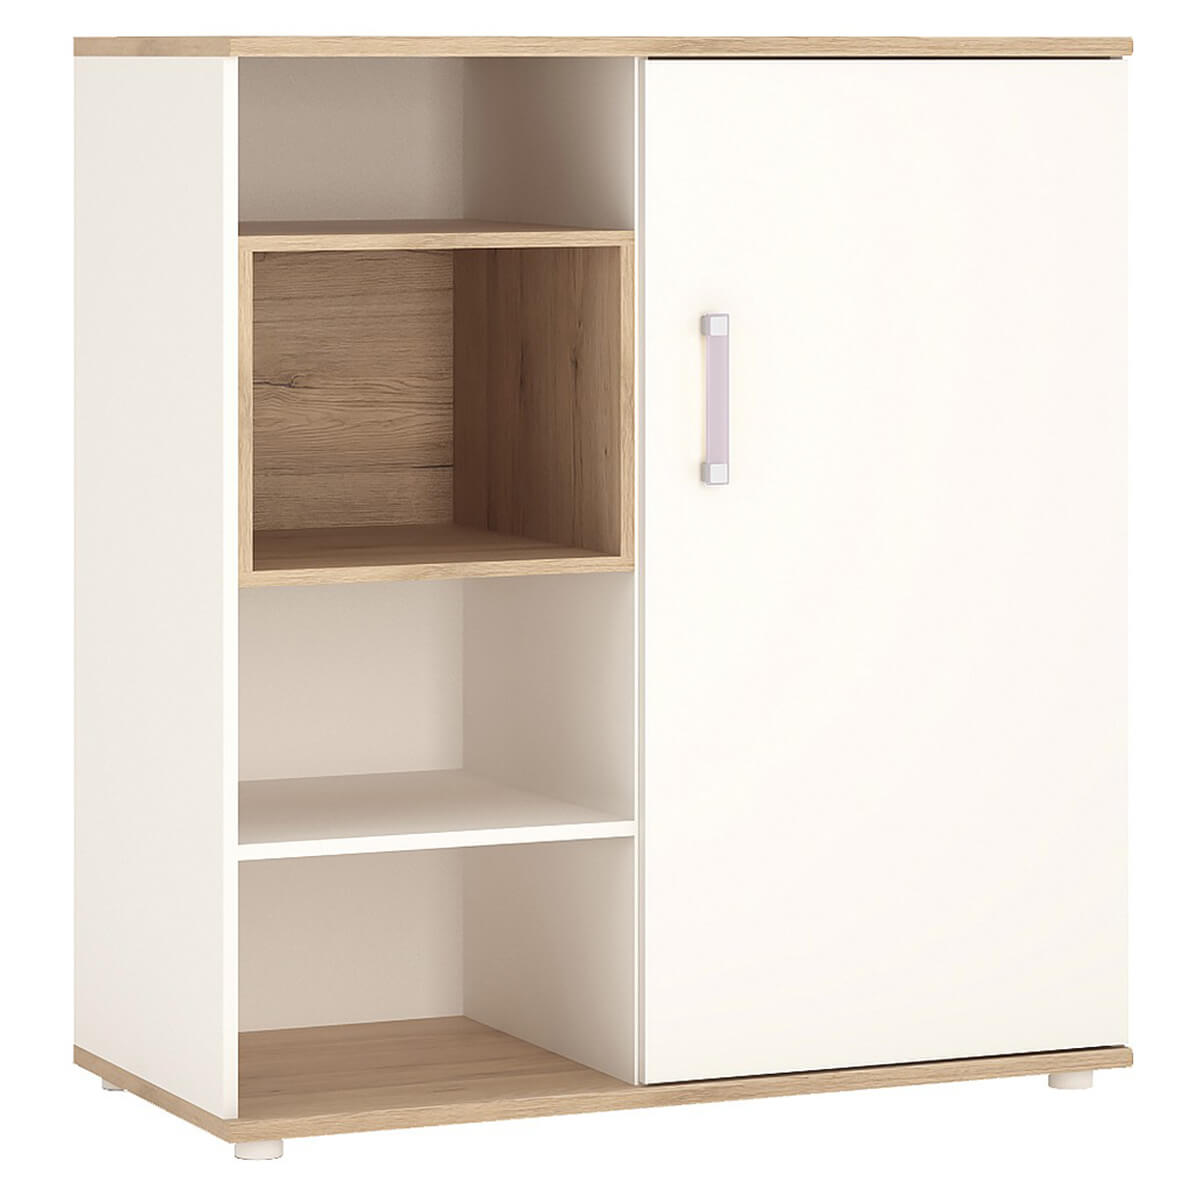 Ikids Shelved Sliding Door Storage Cabinet With Coloured Handle Fads